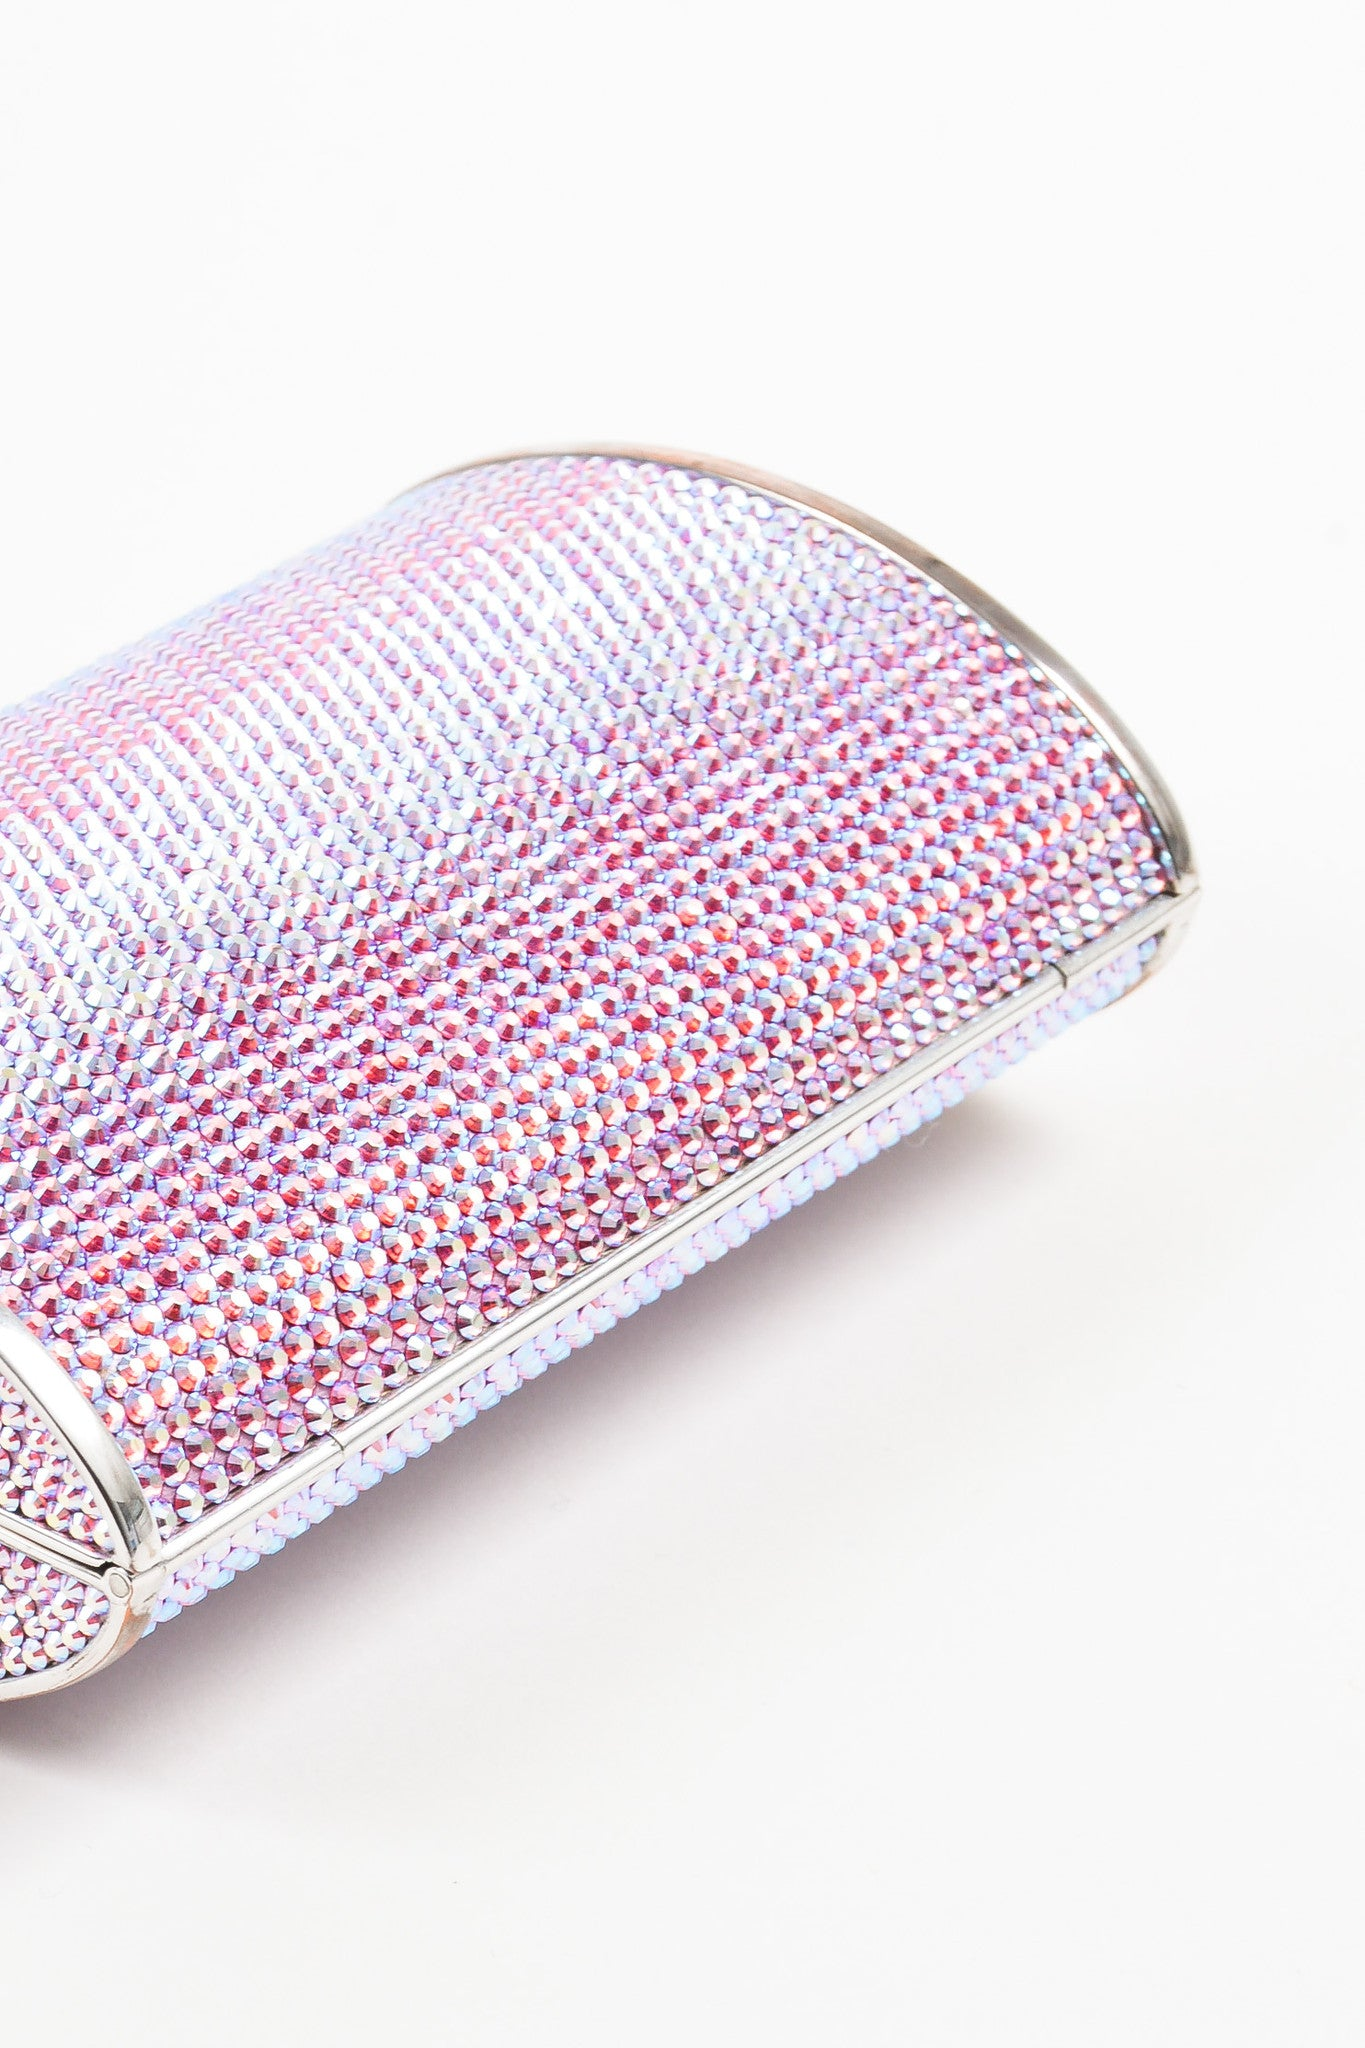 Judith Leiber Pink, Purple, and Silver Rhinestone Clutch Minaudiere Evening Bag Detail